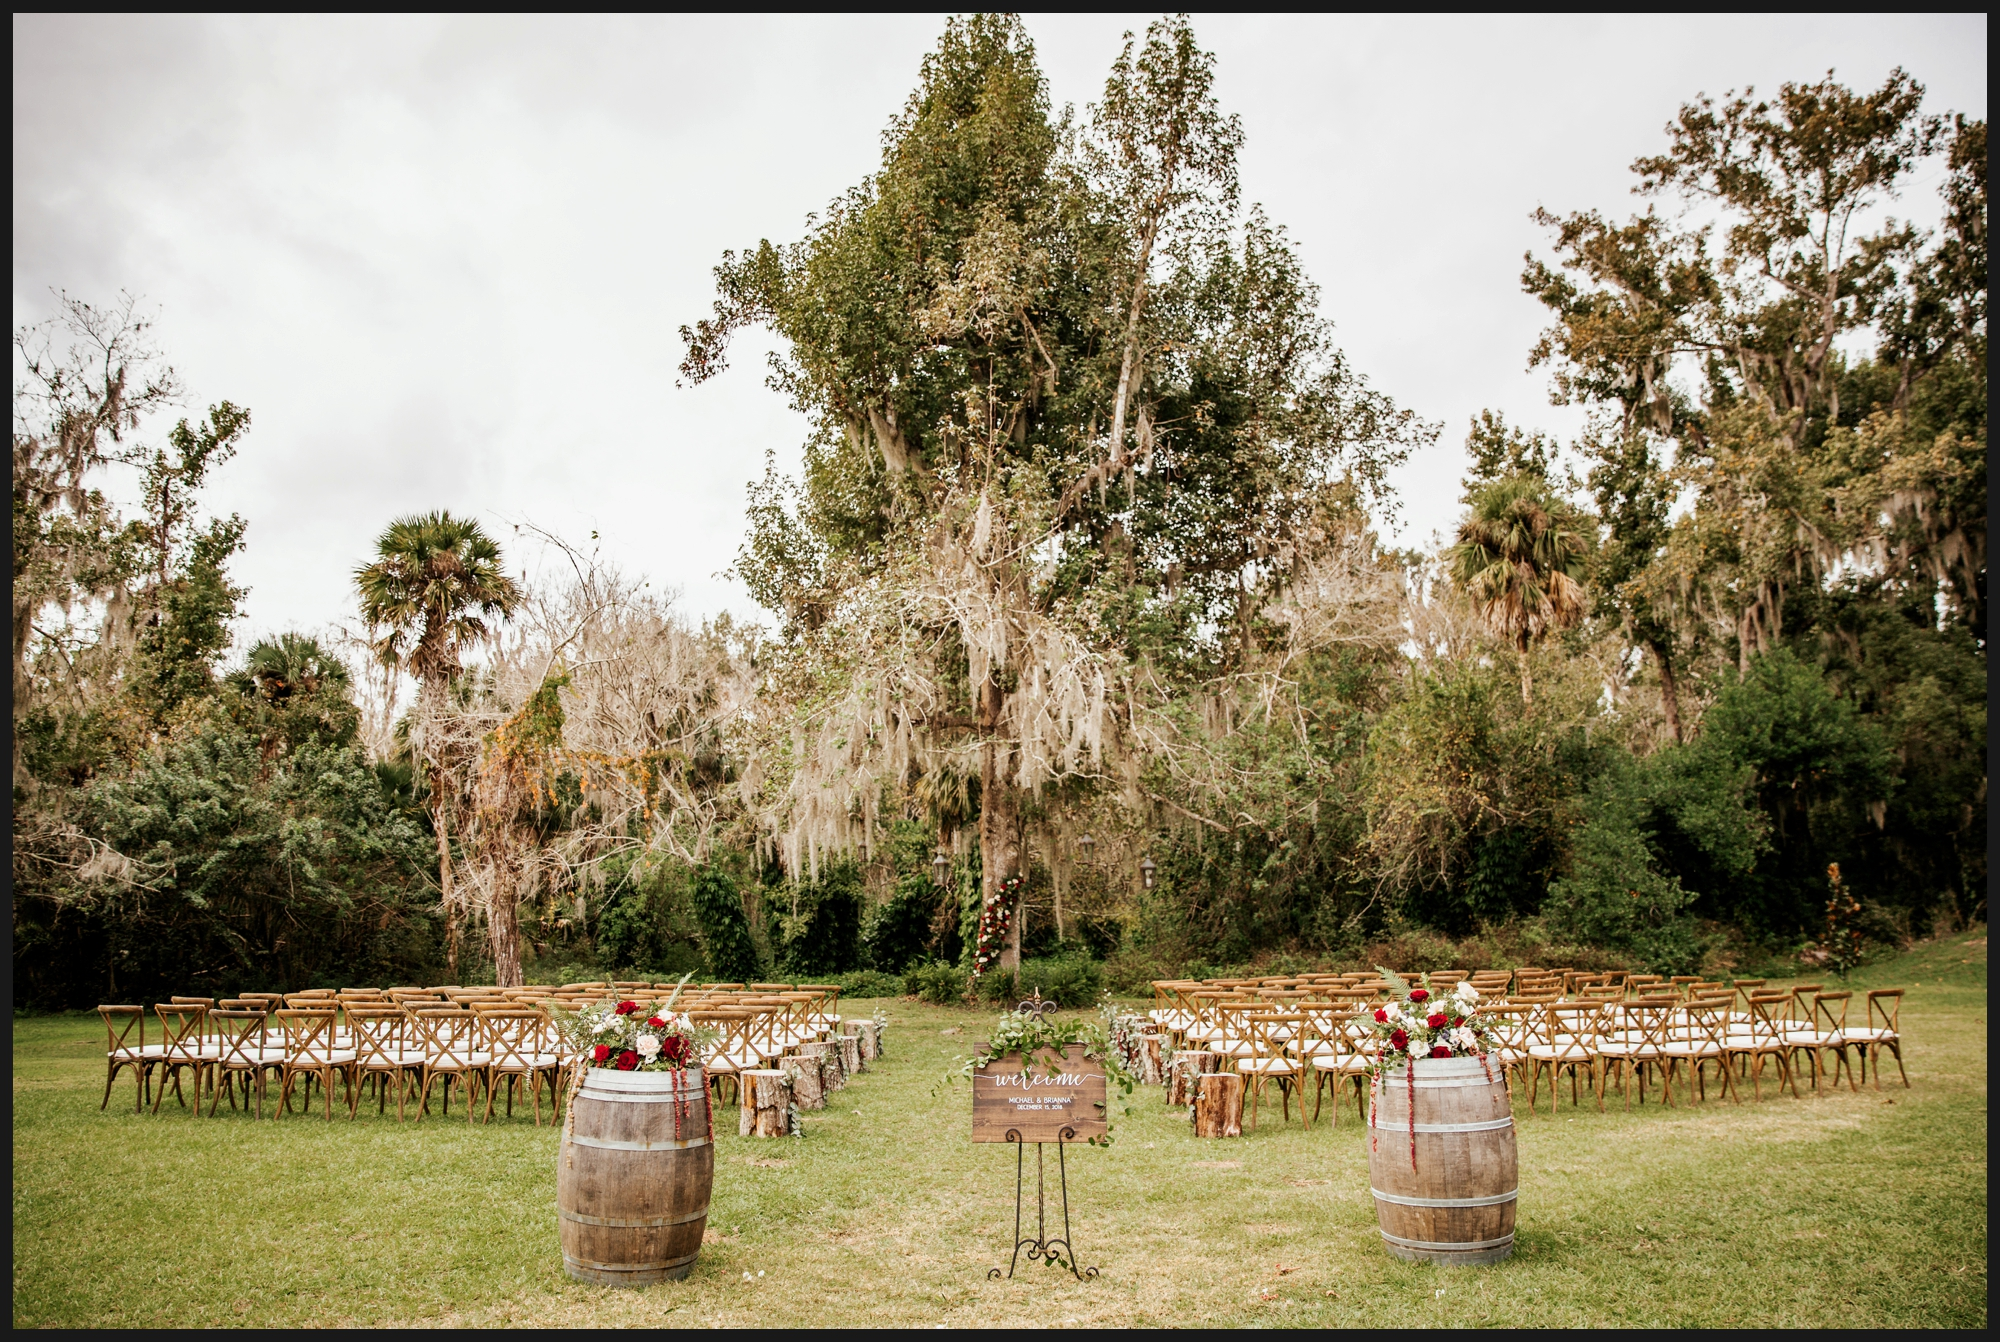 Orlando-Wedding-Photographer-destination-wedding-photographer-florida-wedding-photographer-hawaii-wedding-photographer_0477.jpg